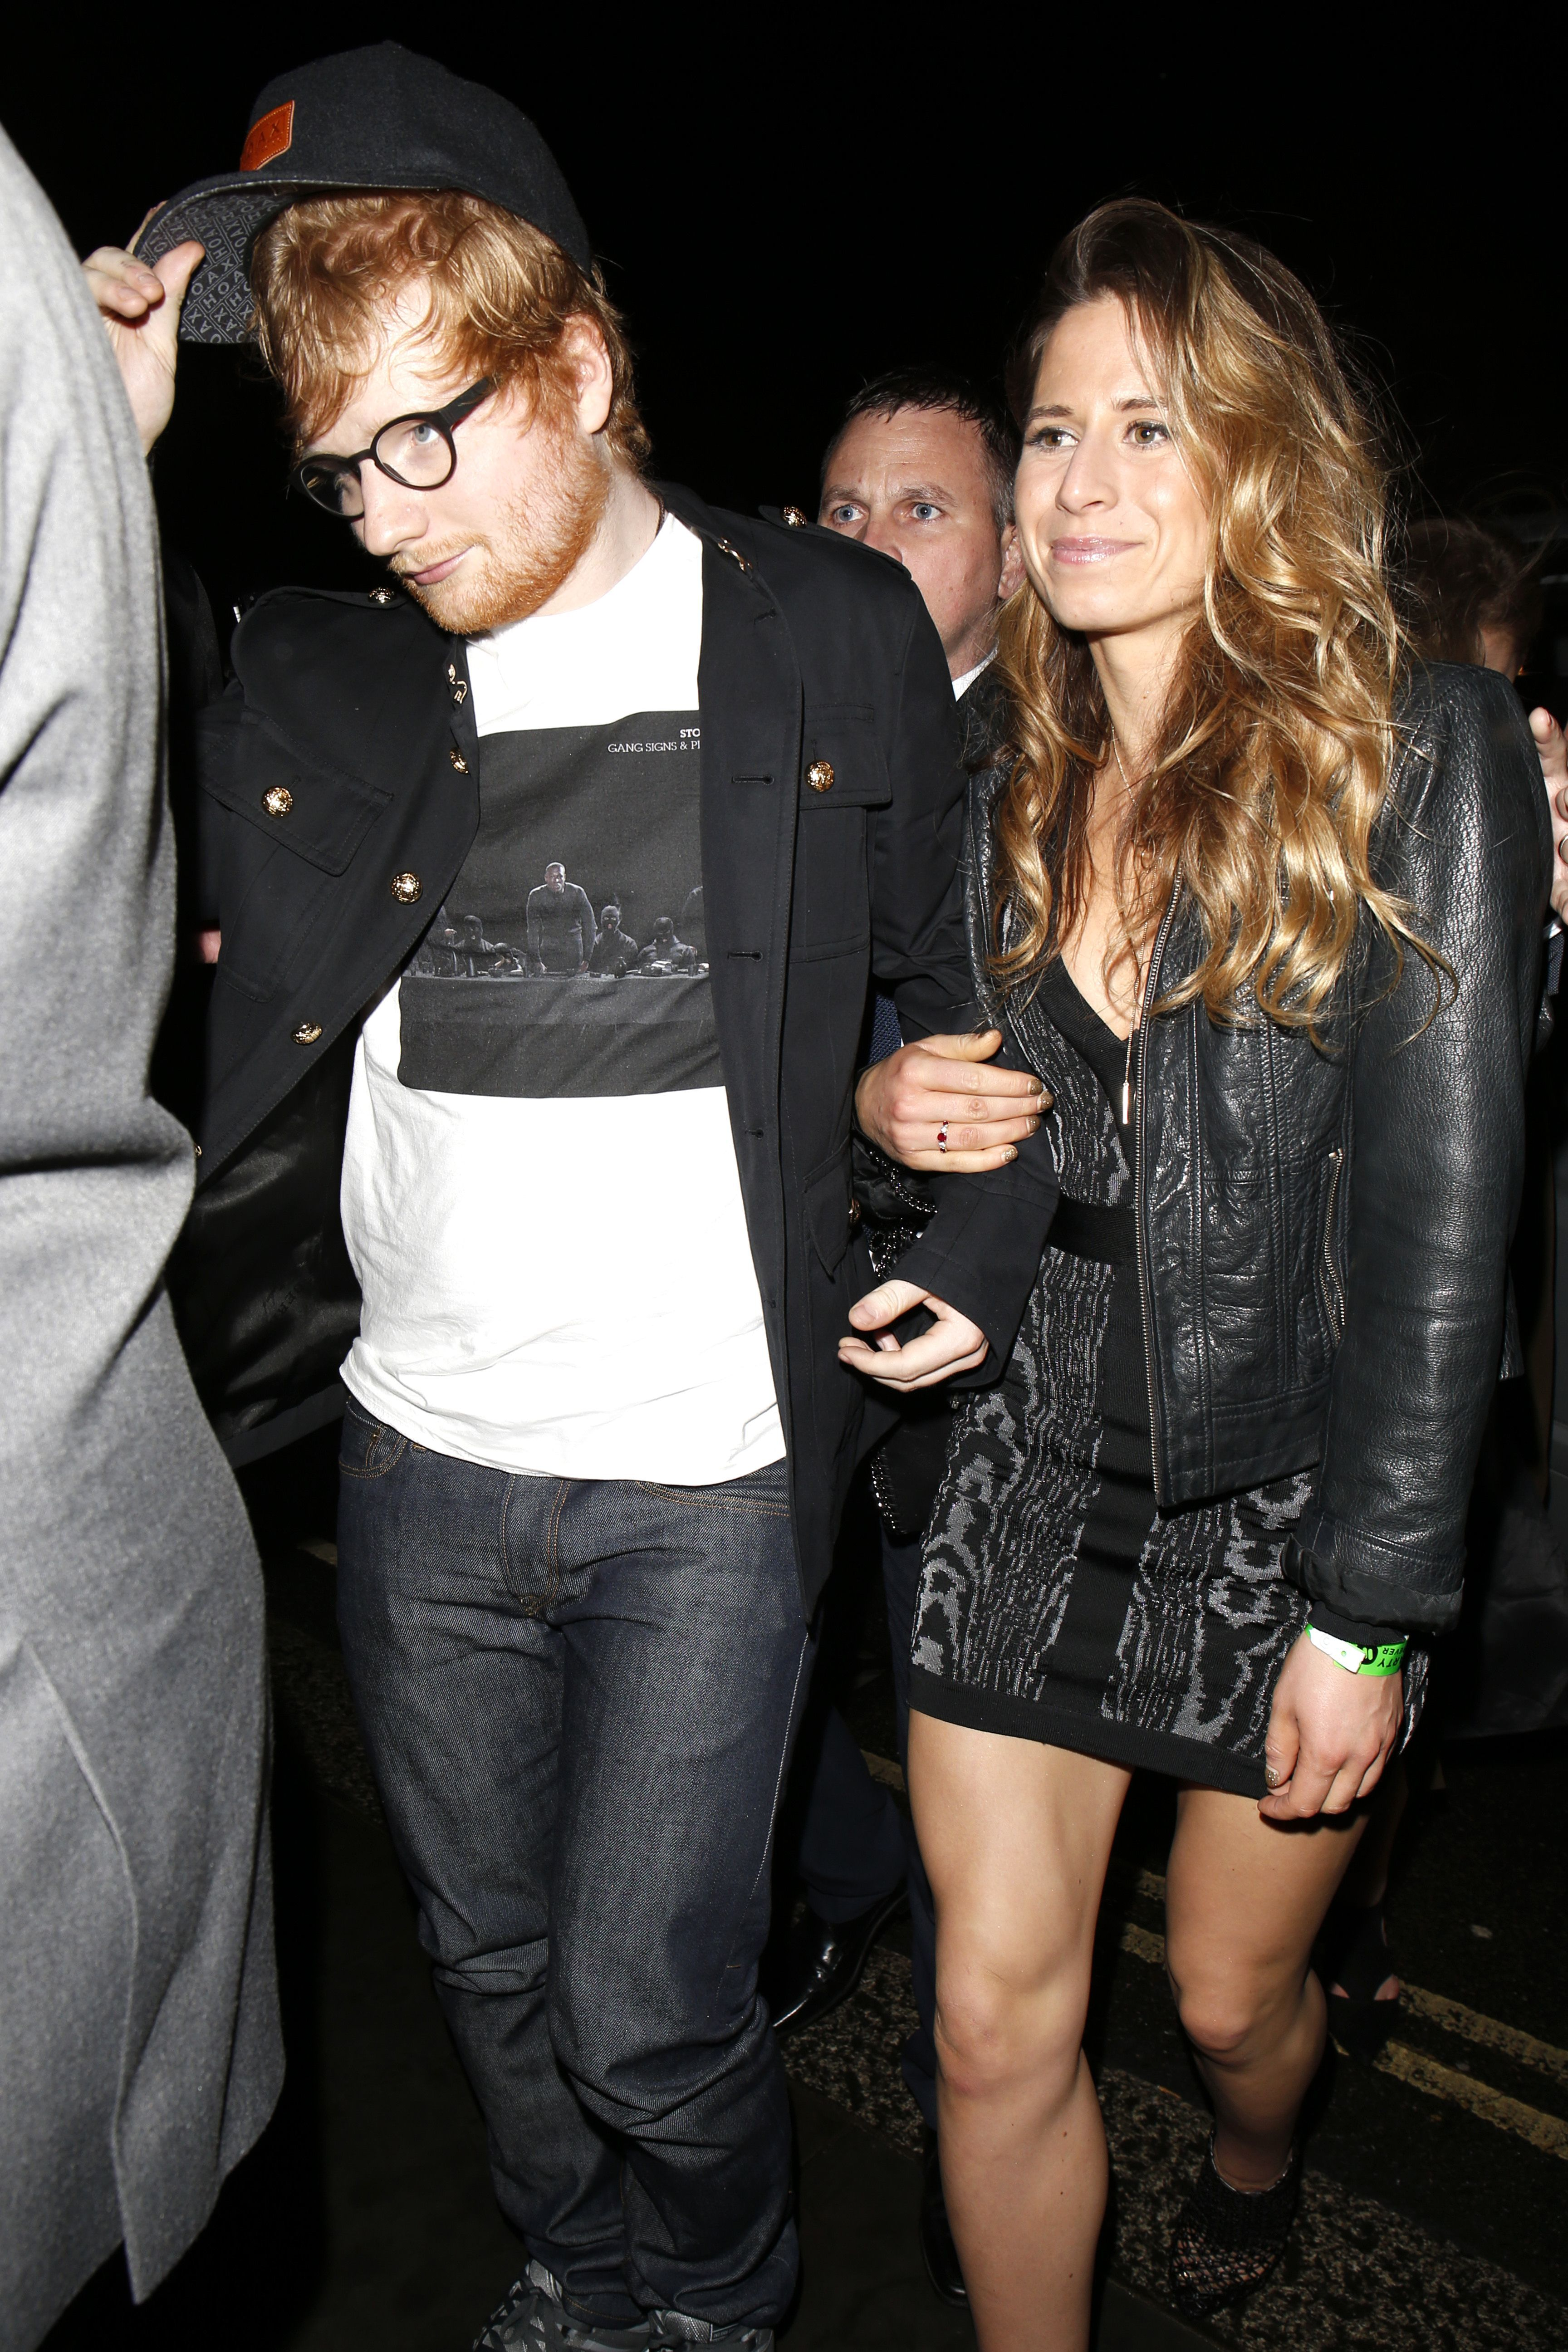 Ed Sheeran and Cherry Seaborn attend Warner Music's Brits afterparty in London on Feb. 22, 2017.